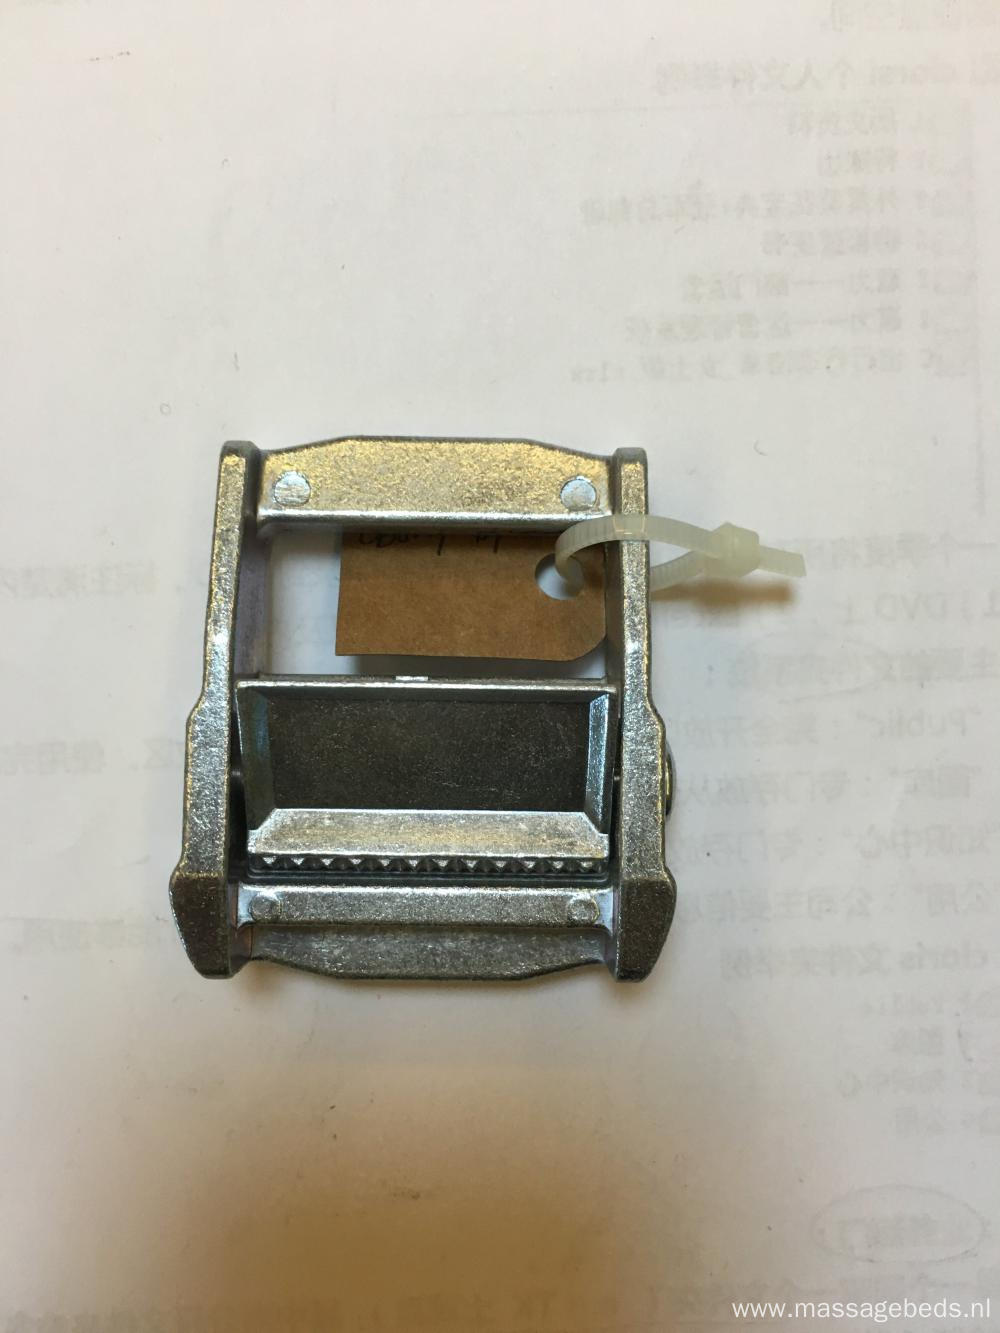 38mm Metal Cam Buckle With 900Kgs